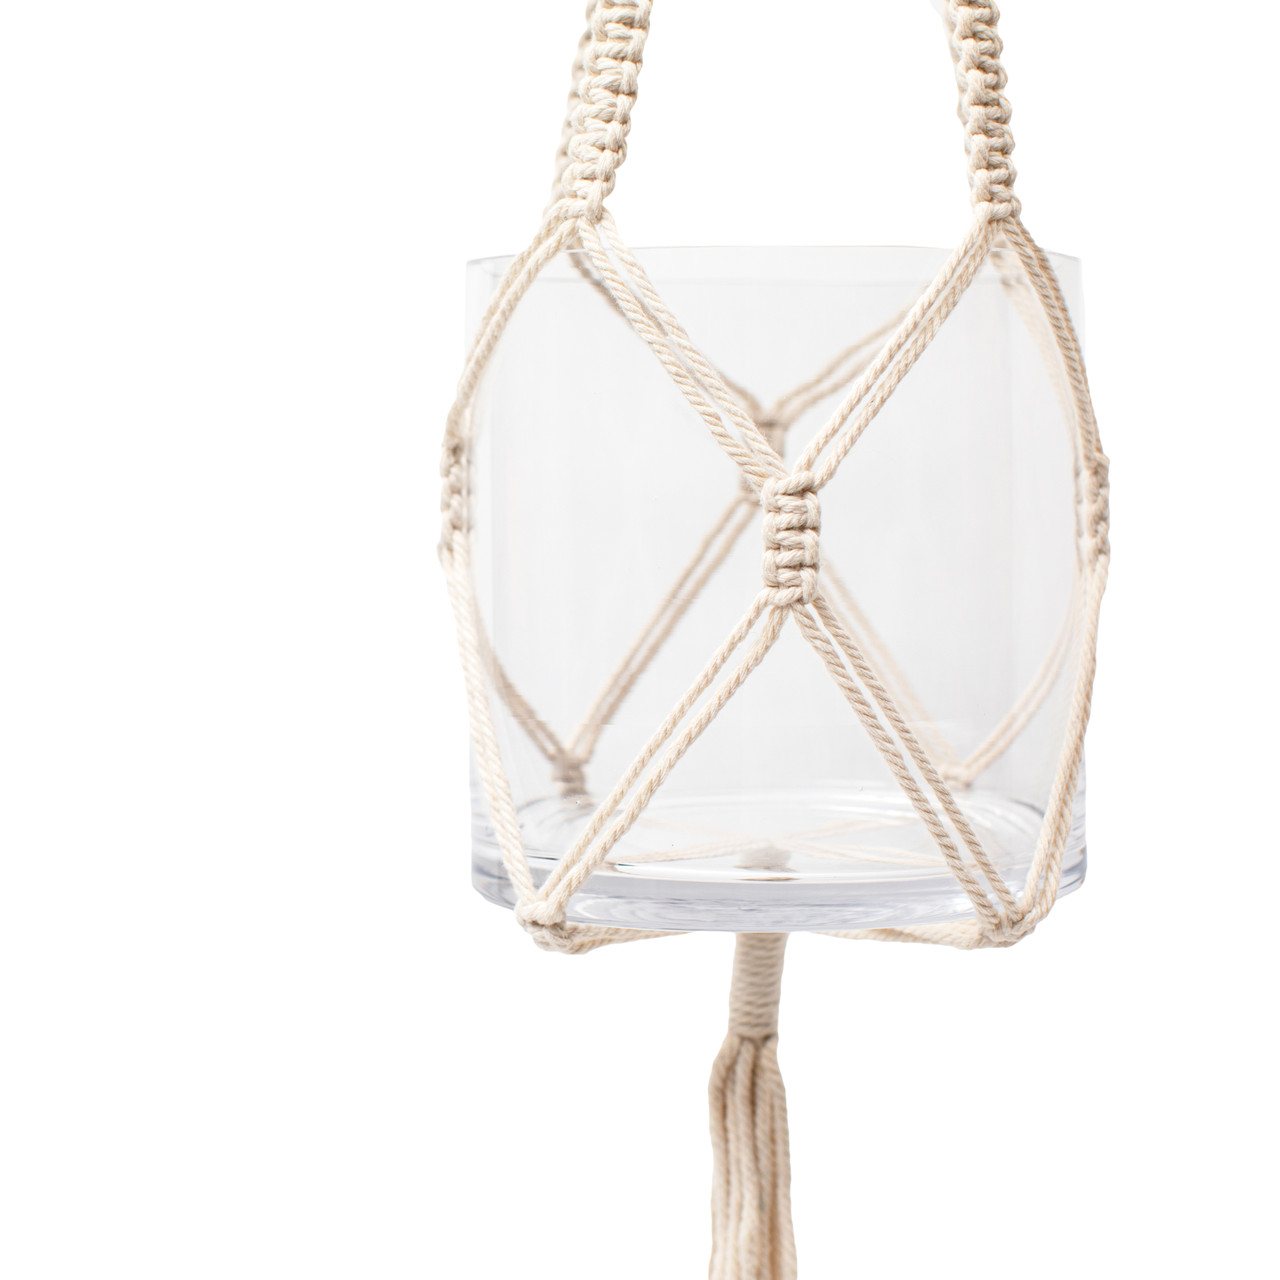 close up picture of the macrame detailing that holds the glass vase